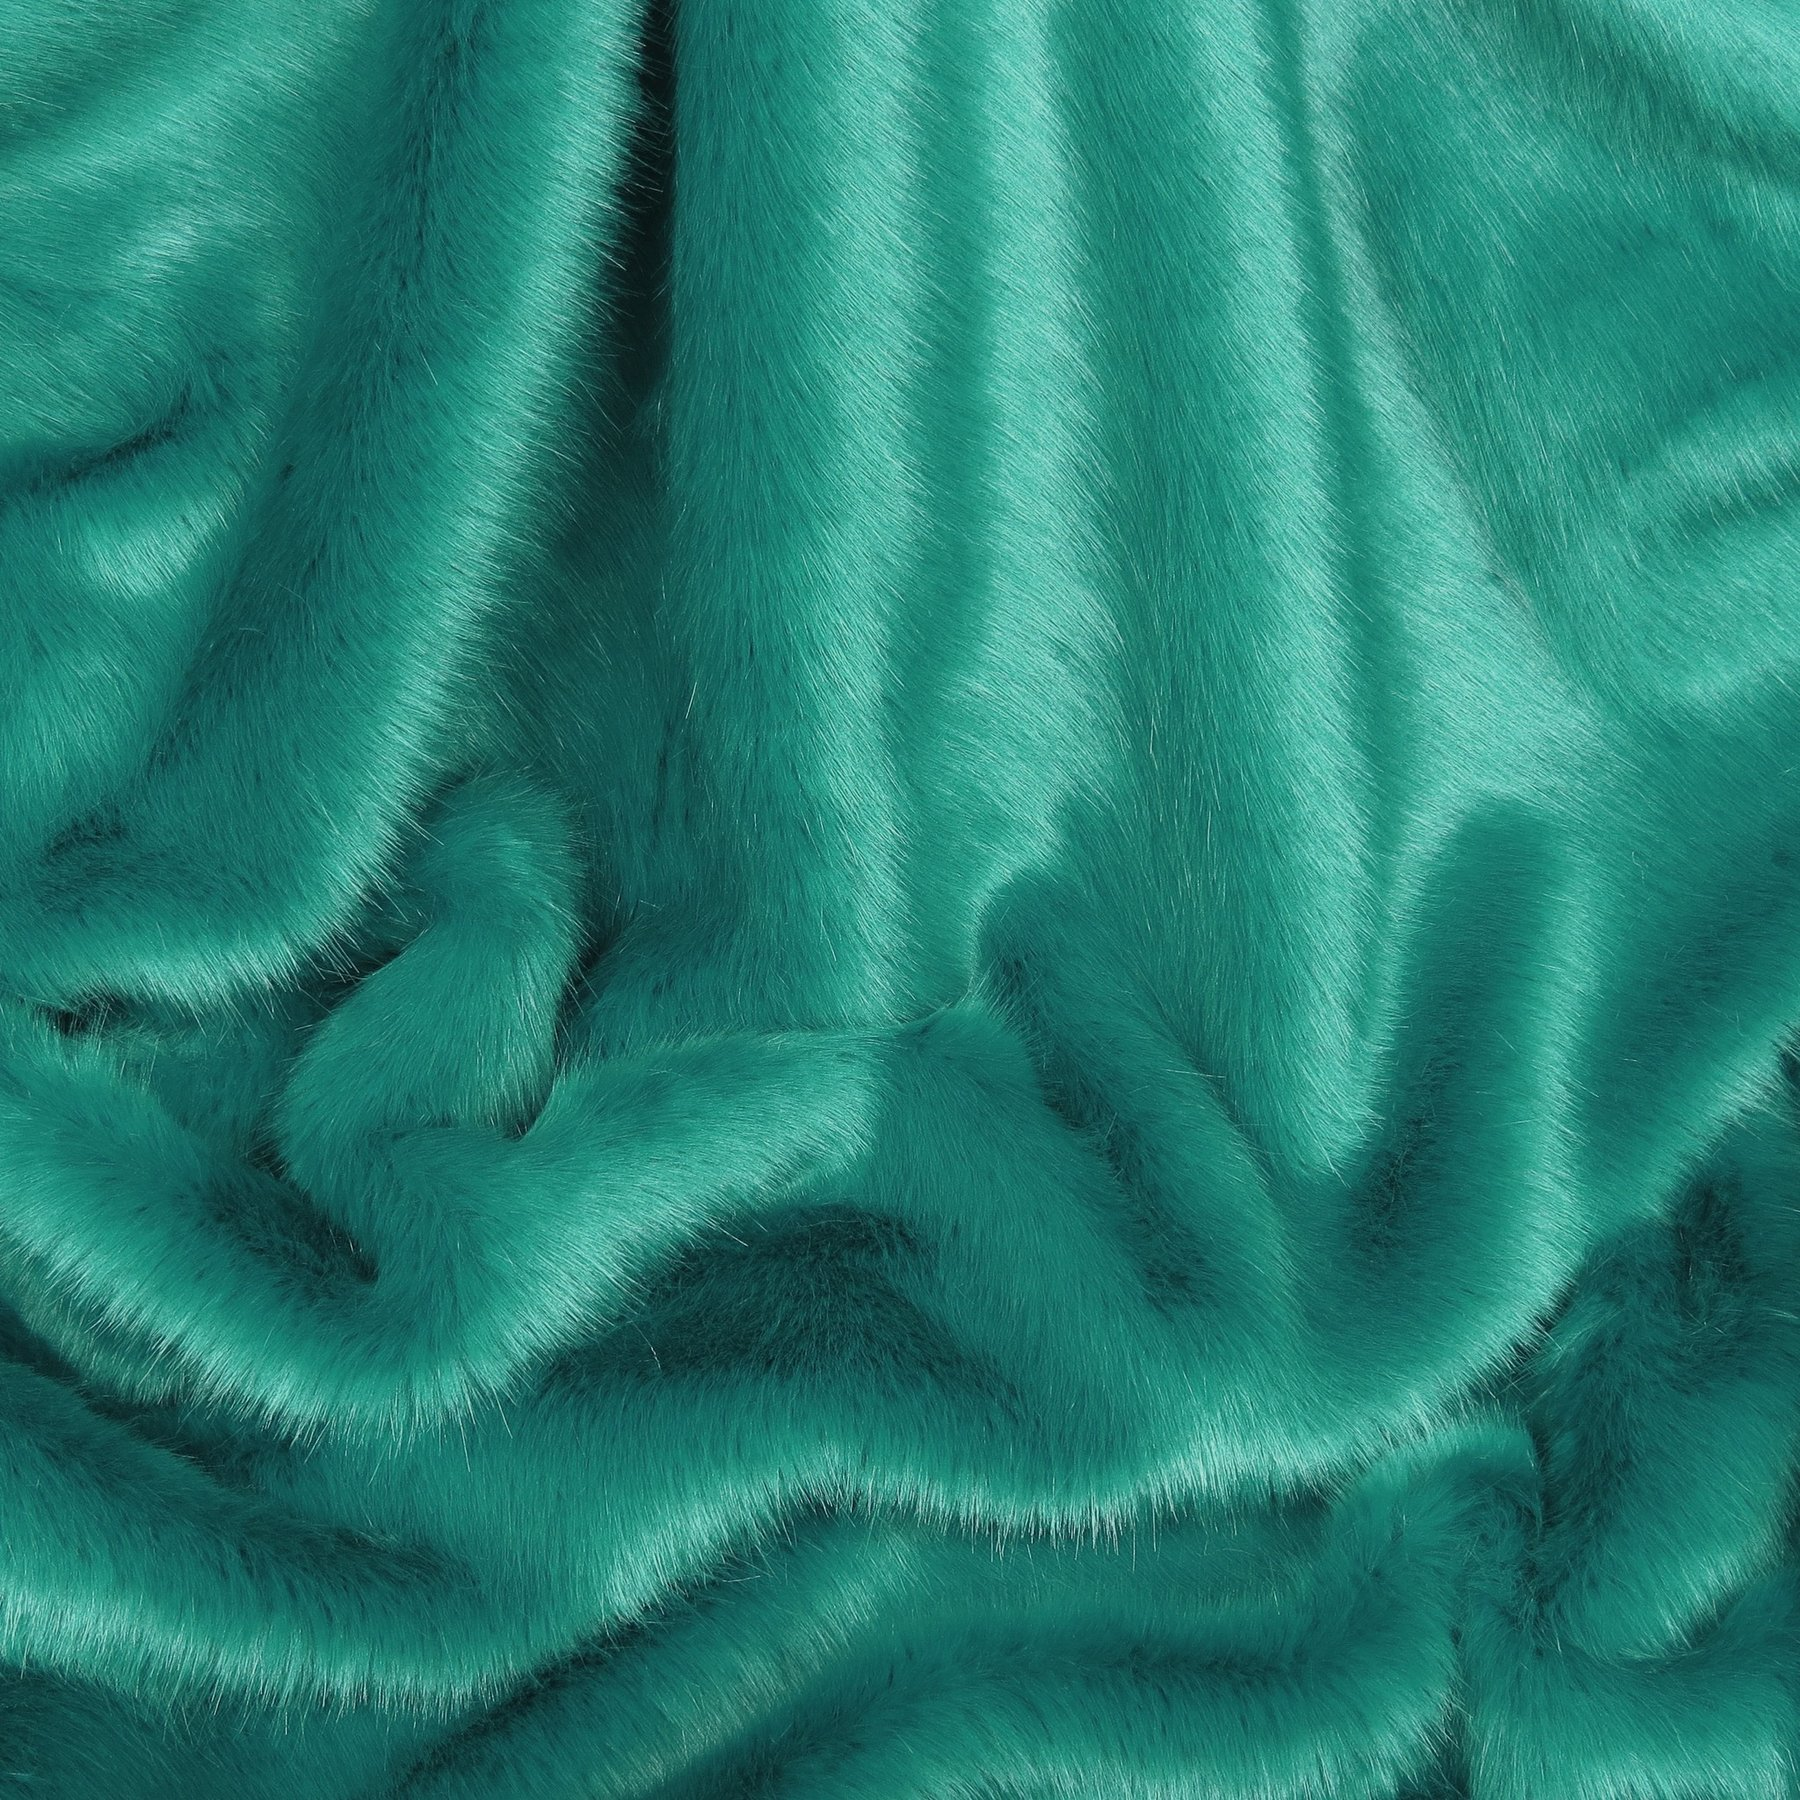 Sea Green Swatch